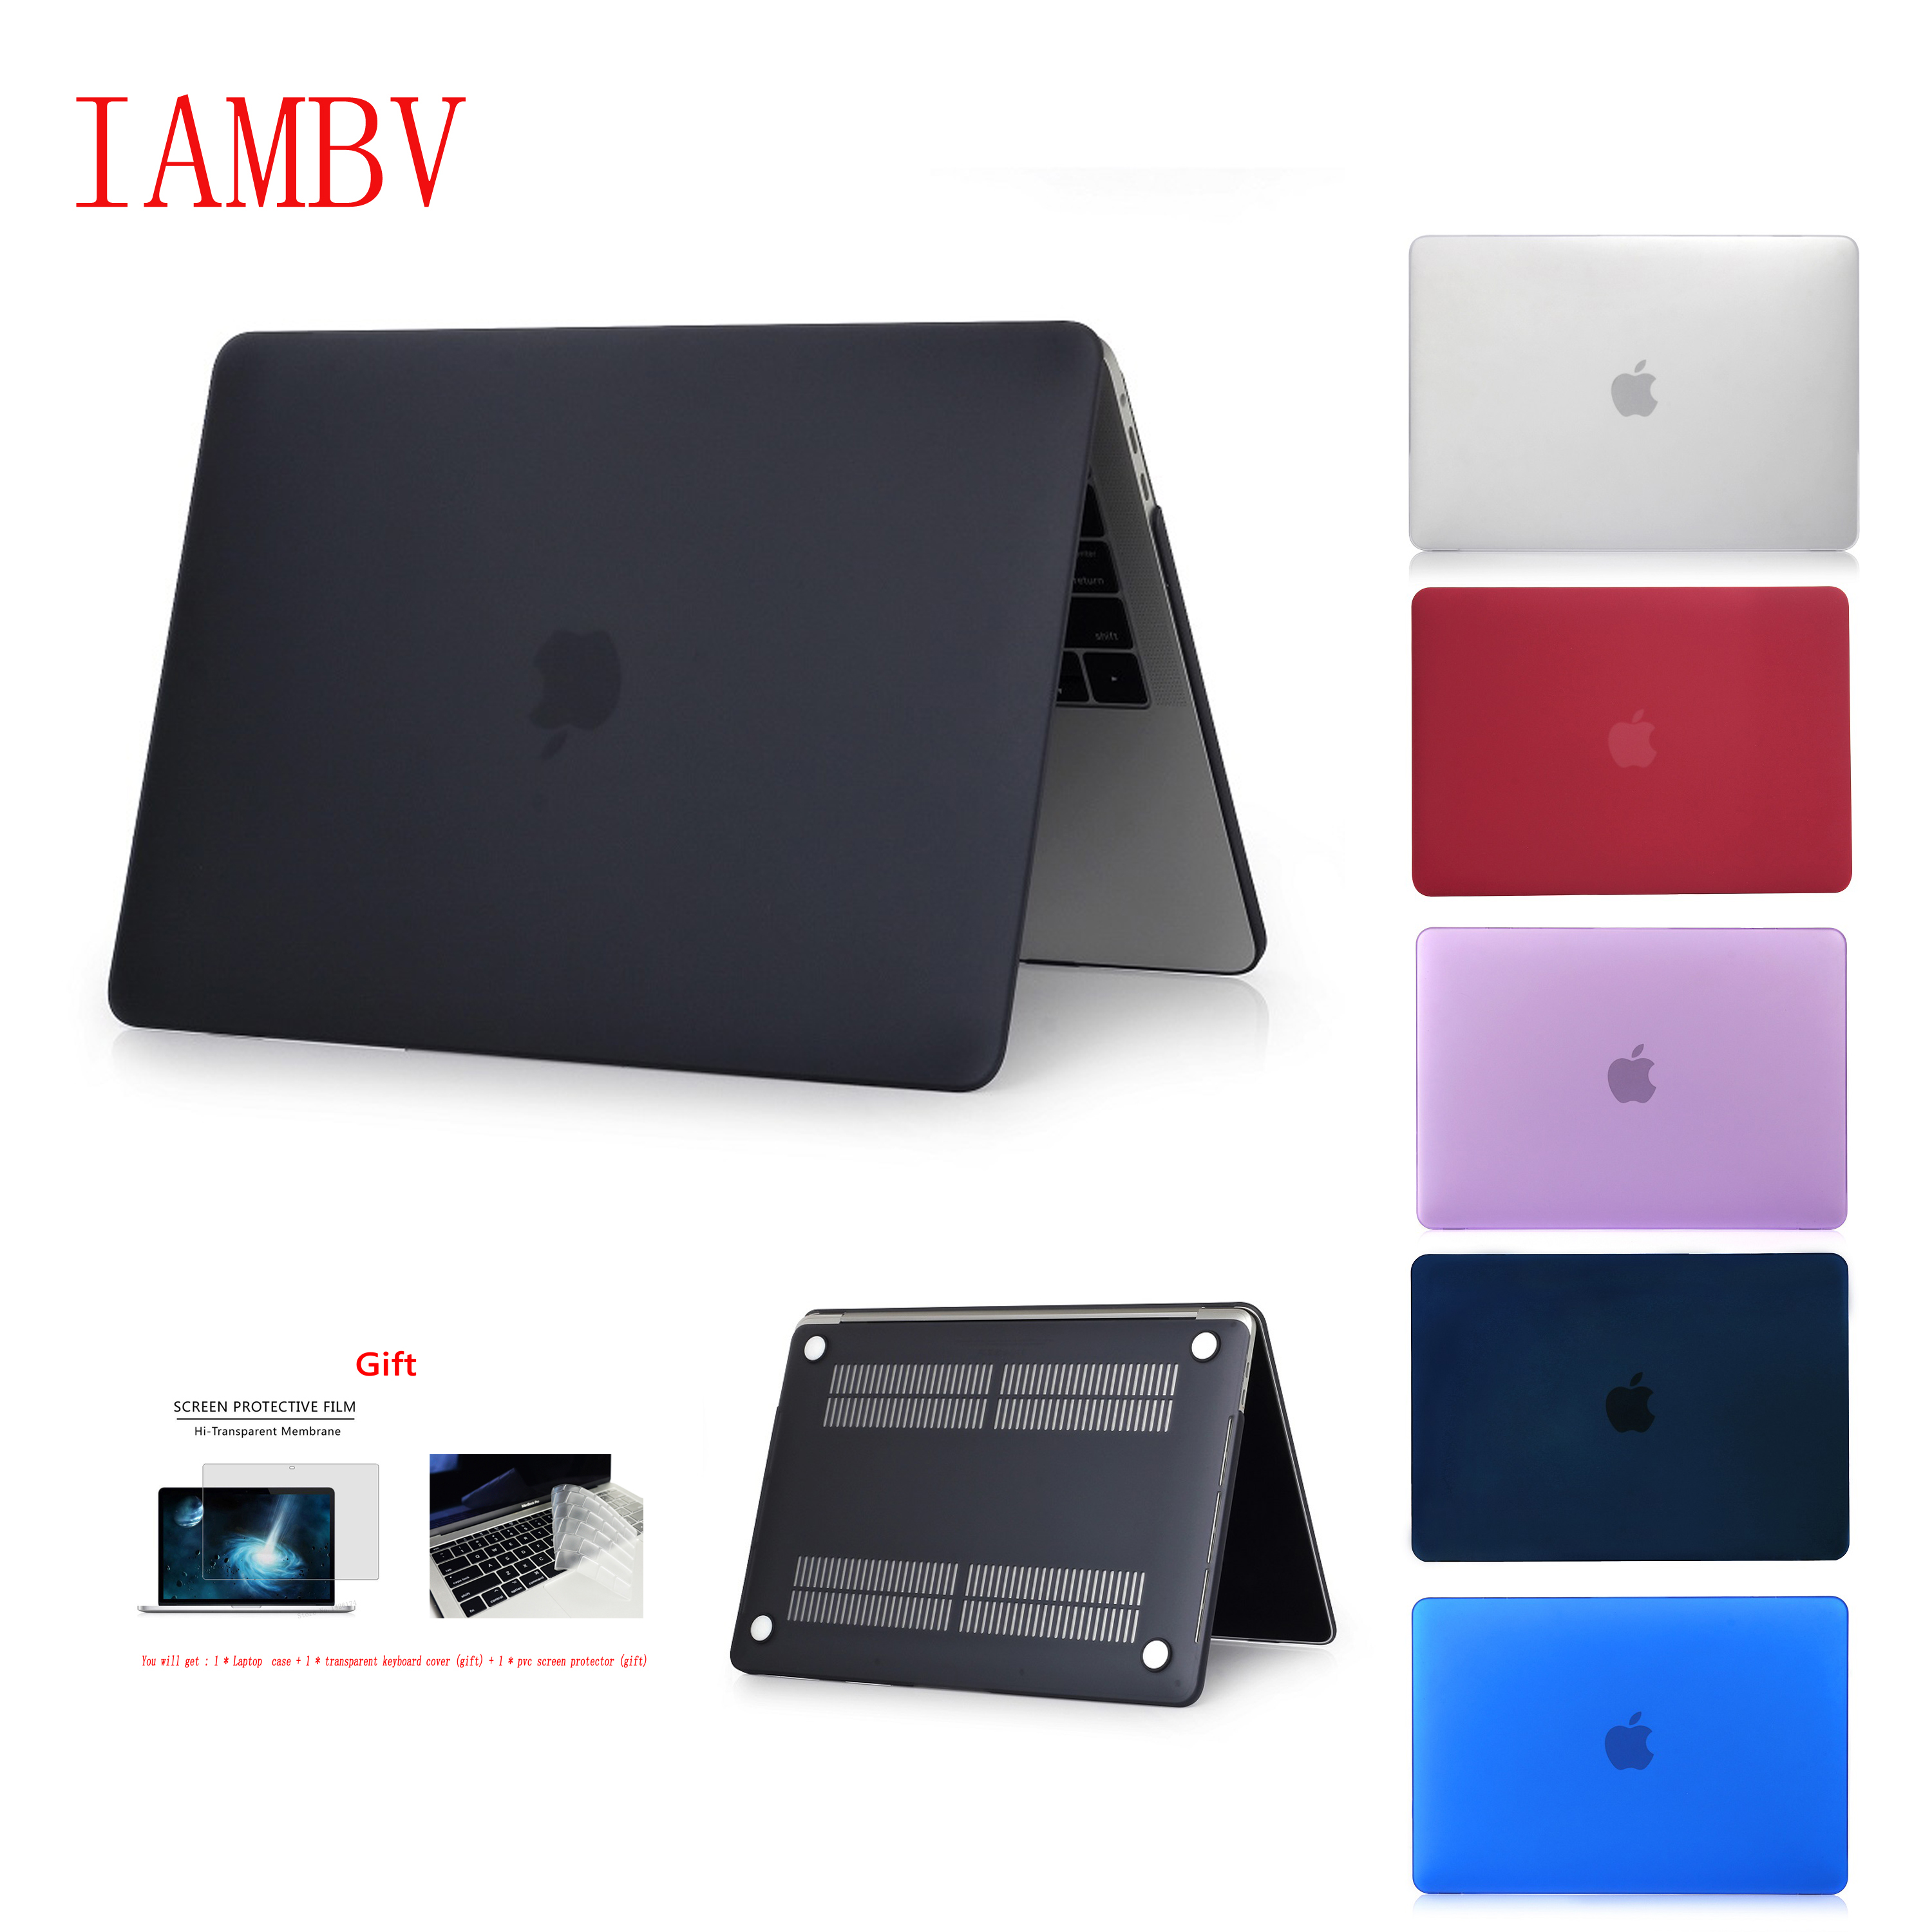 Laptop Case MacBook Pro School Creative Art Fashion Pen Writing Plastic Hard Shell Compatible Mac Air 11 Pro 13 15 2018 MacBook Pro Accessories Protection for MacBook 2016-2019 Version